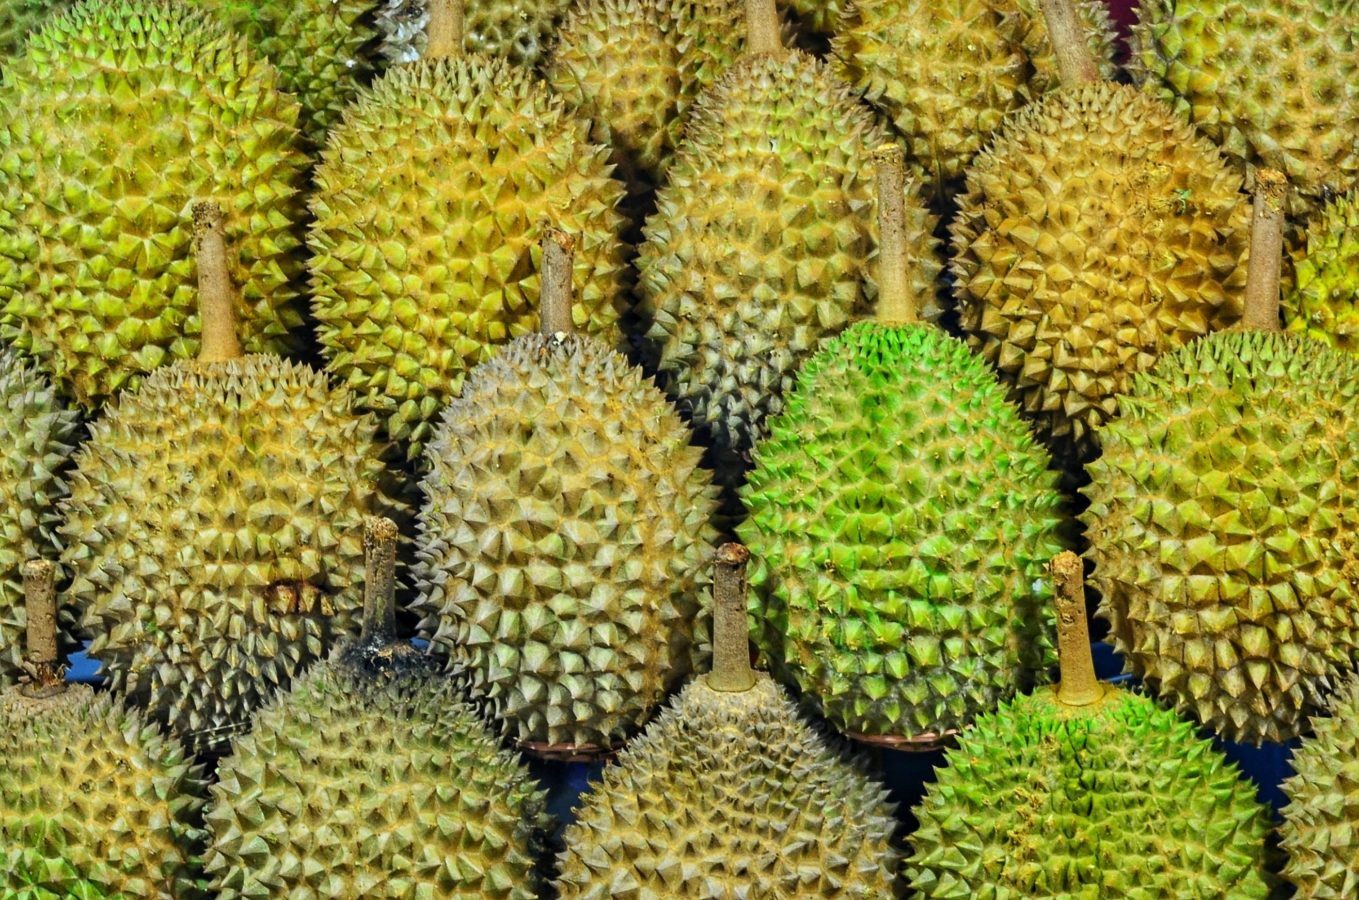 Brush up on your knowledge of durian varietals with this cheat sheet